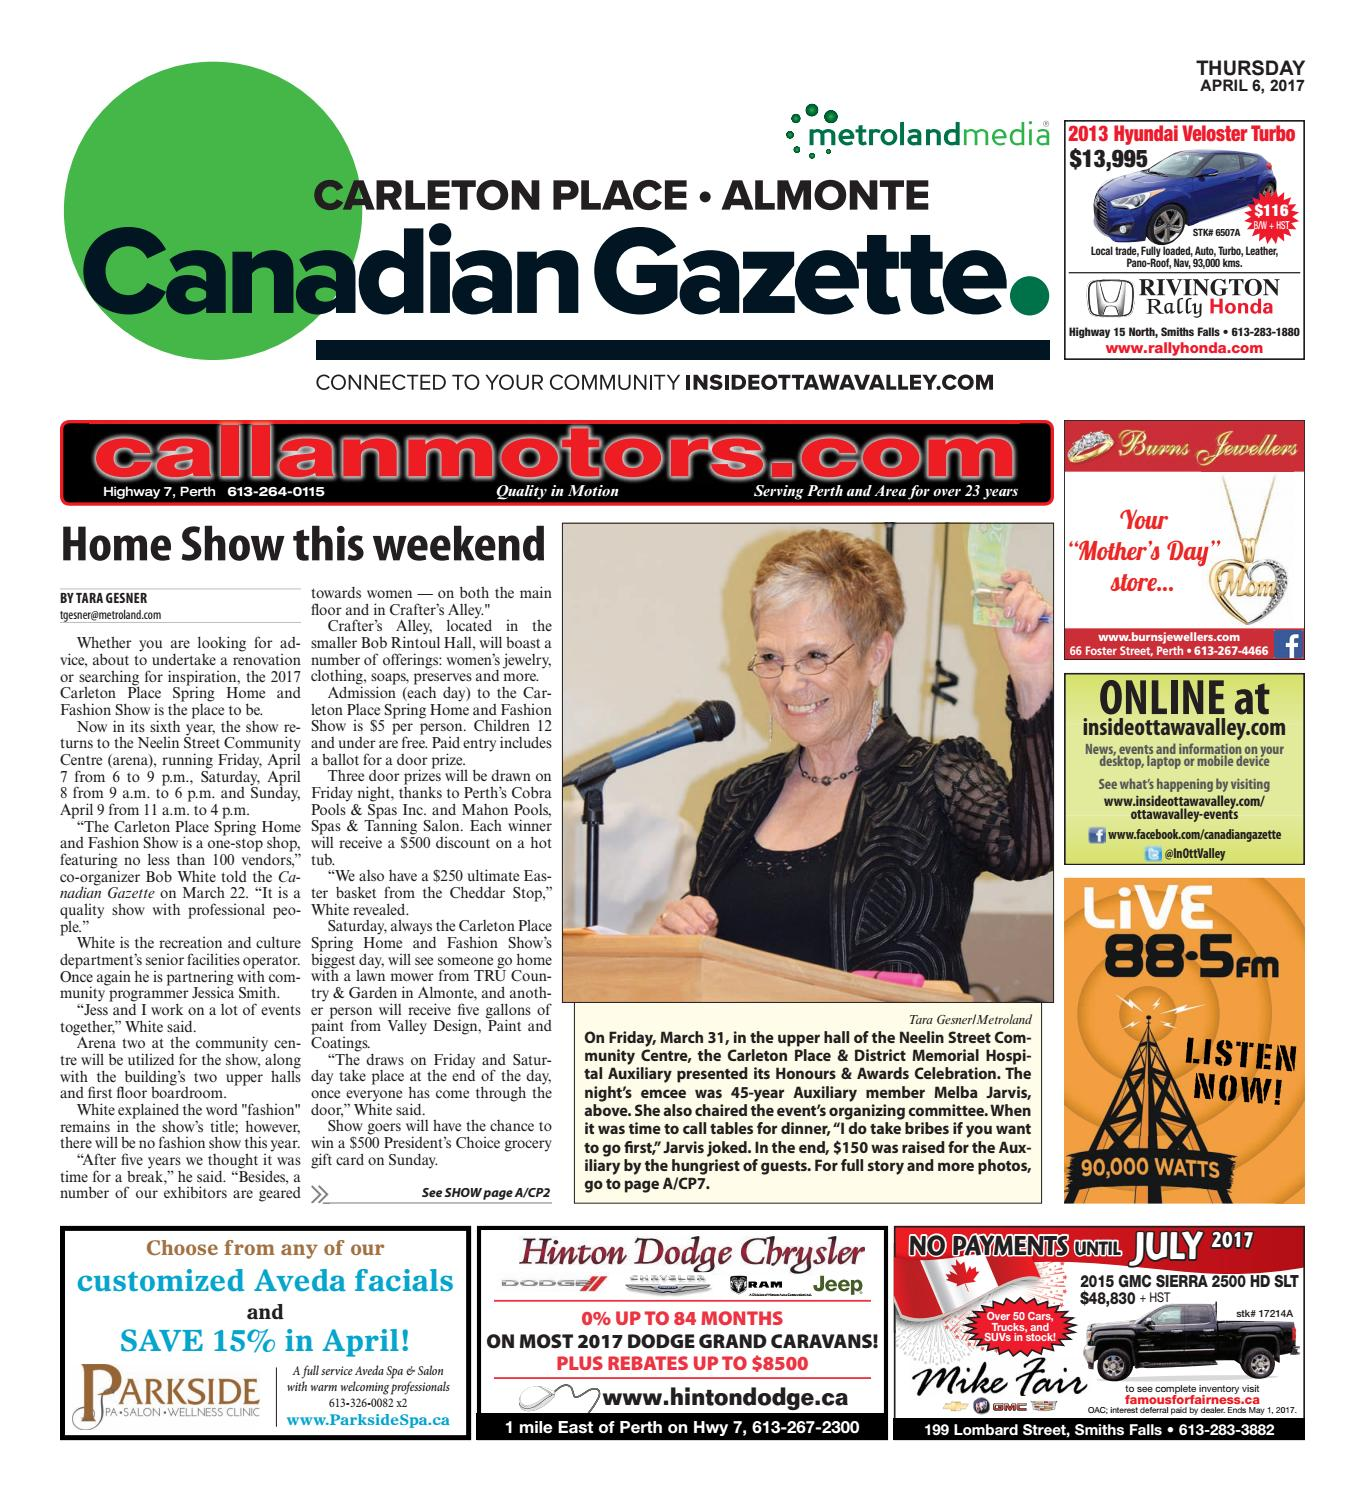 Almontecarletonplace040617 by metroland east almonte carleton almontecarletonplace040617 by metroland east almonte carleton place canadian gazette issuu fandeluxe Gallery